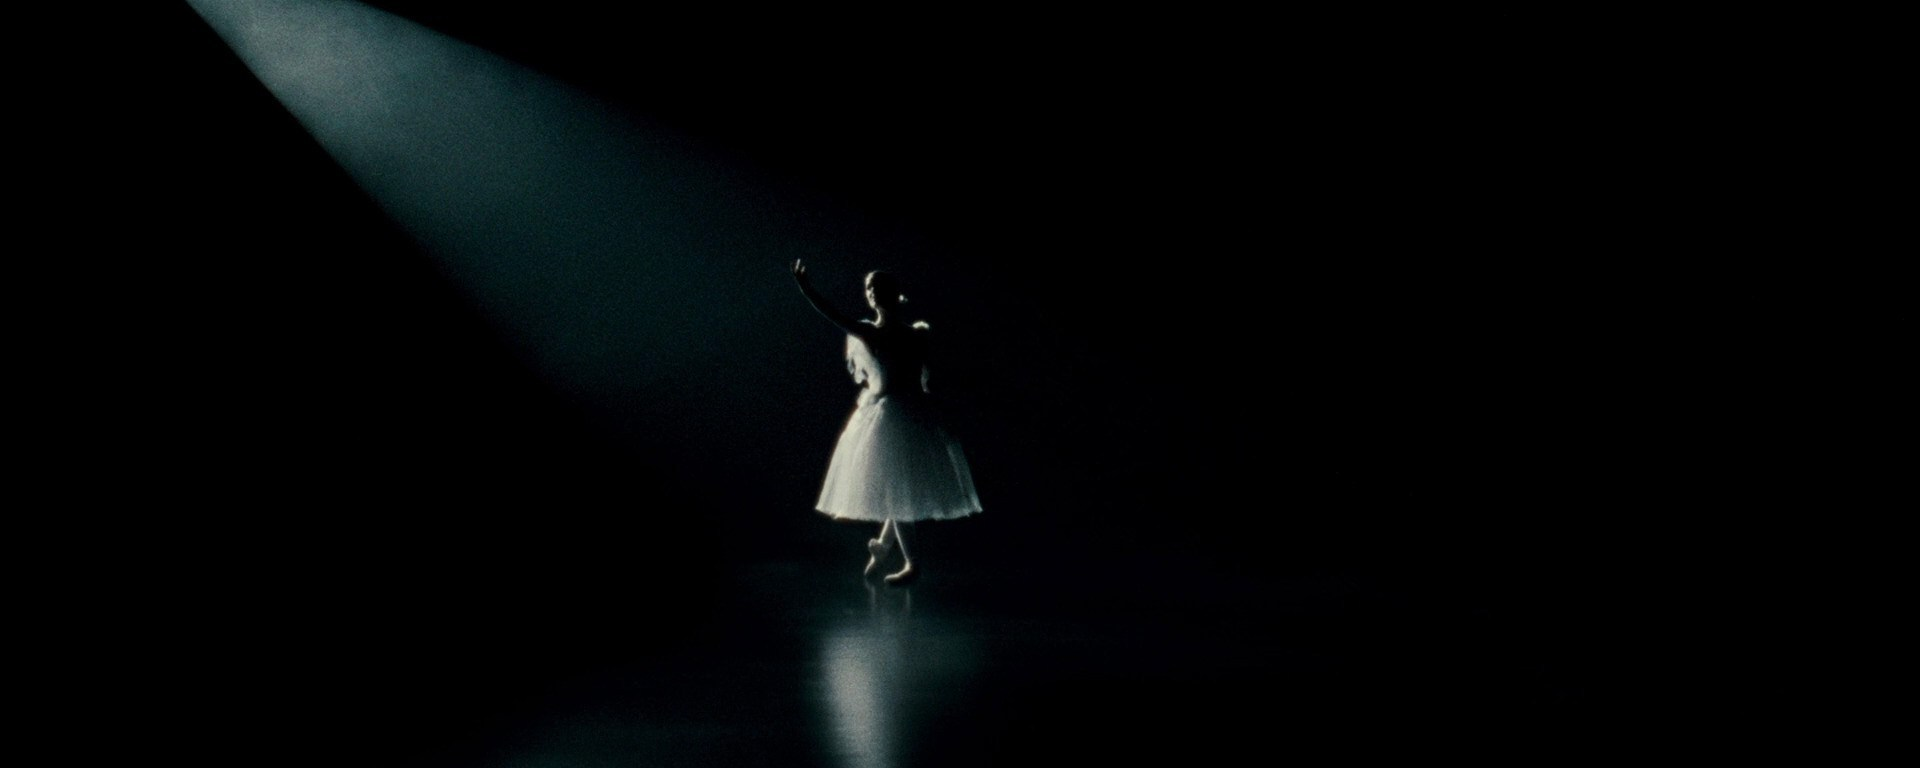 I Just Want To Be Perfect Black Swan 2010 Fictionmachine